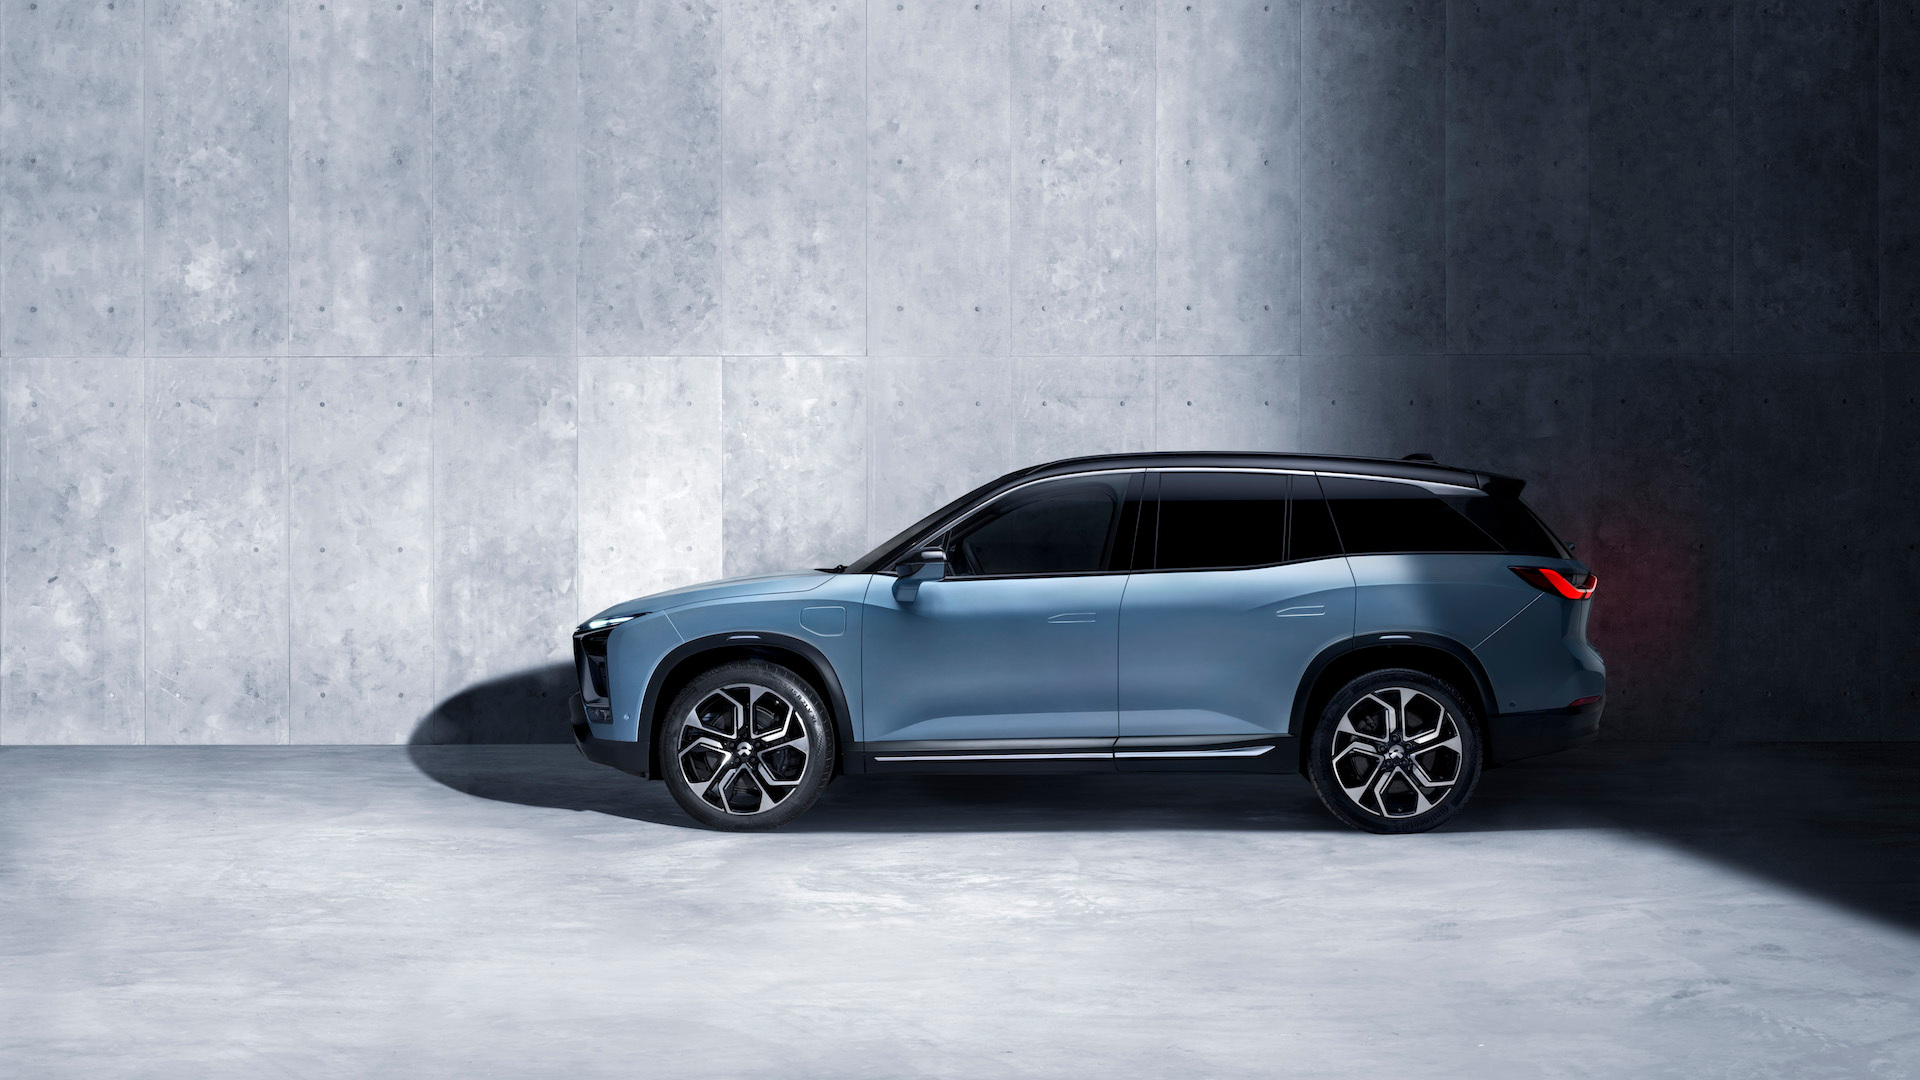 Nio ES8 high-performance electric SUV